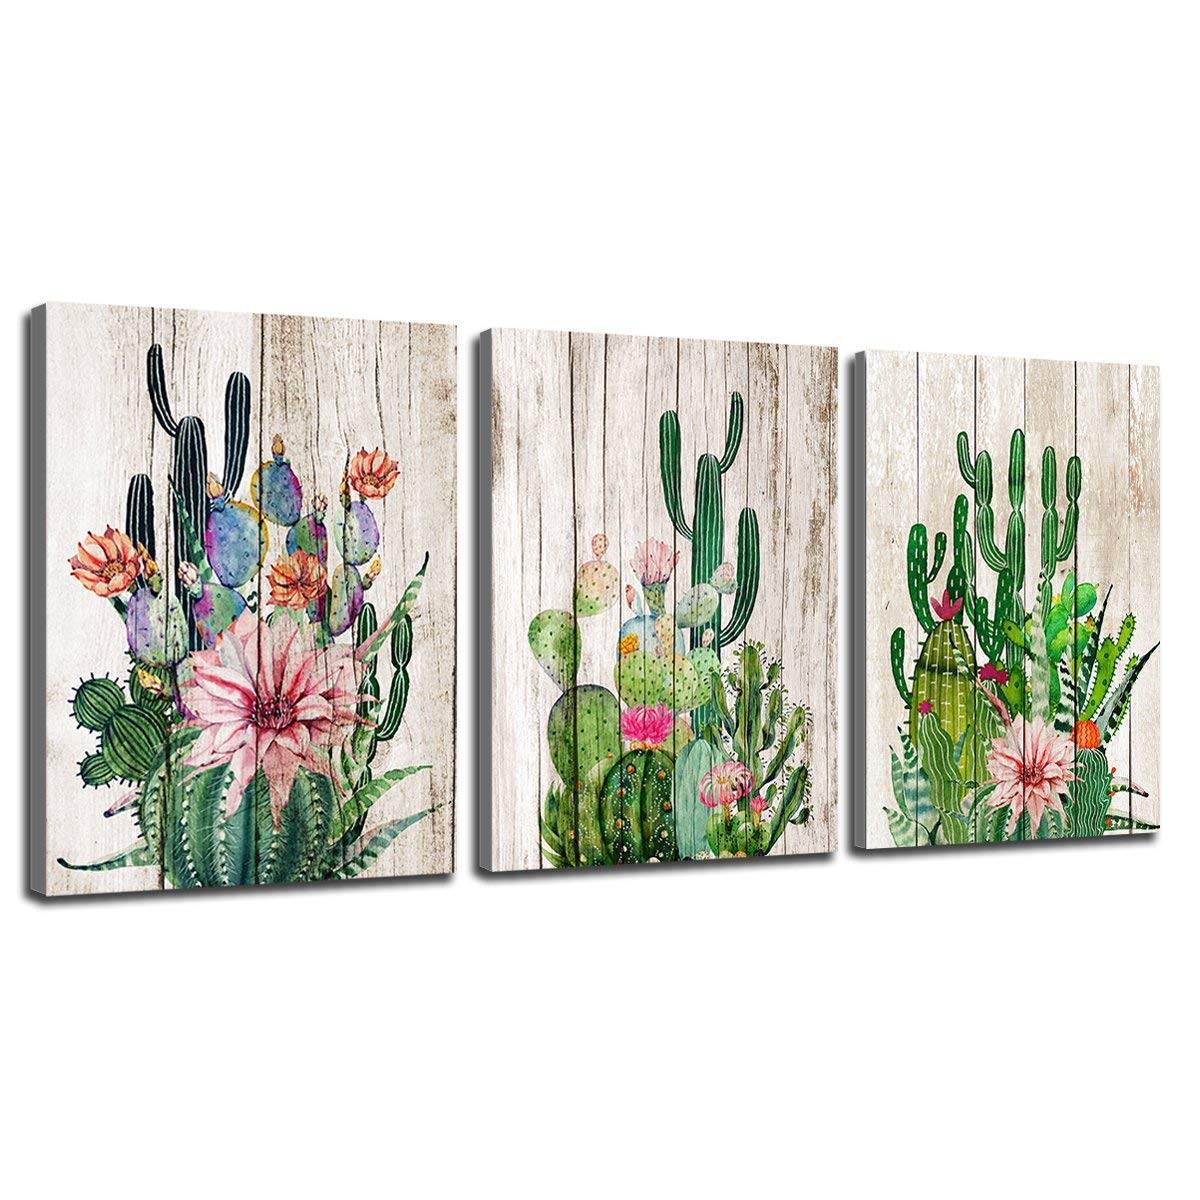 """Canvas Prints Wall Decor Art Cactus Desert Plant with Spiny Flower Watercolor Hand Painted on Wooden Board Modern Nordic Style Painting Pictures Homes Decorations Office 18"""" x 24"""" 3 Pieces / Set"""